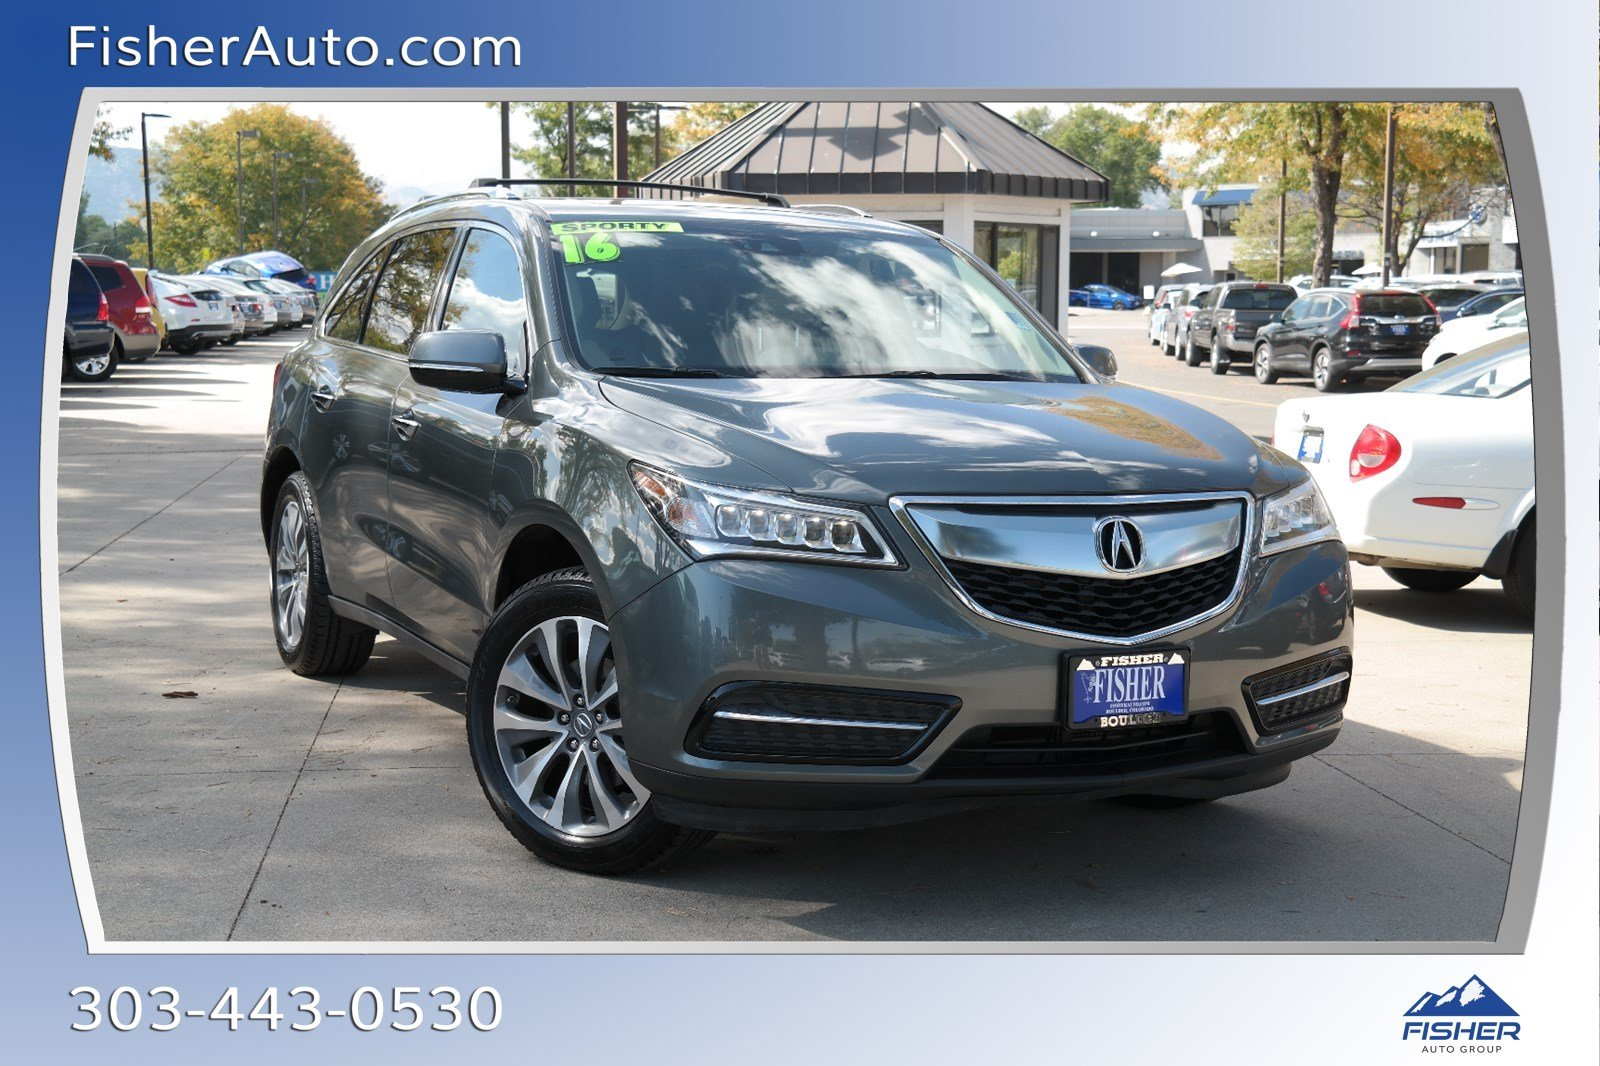 Pre-Owned 2016 Acura MDX SH-AWD 4dr w/Tech/AcuraWatch Plus